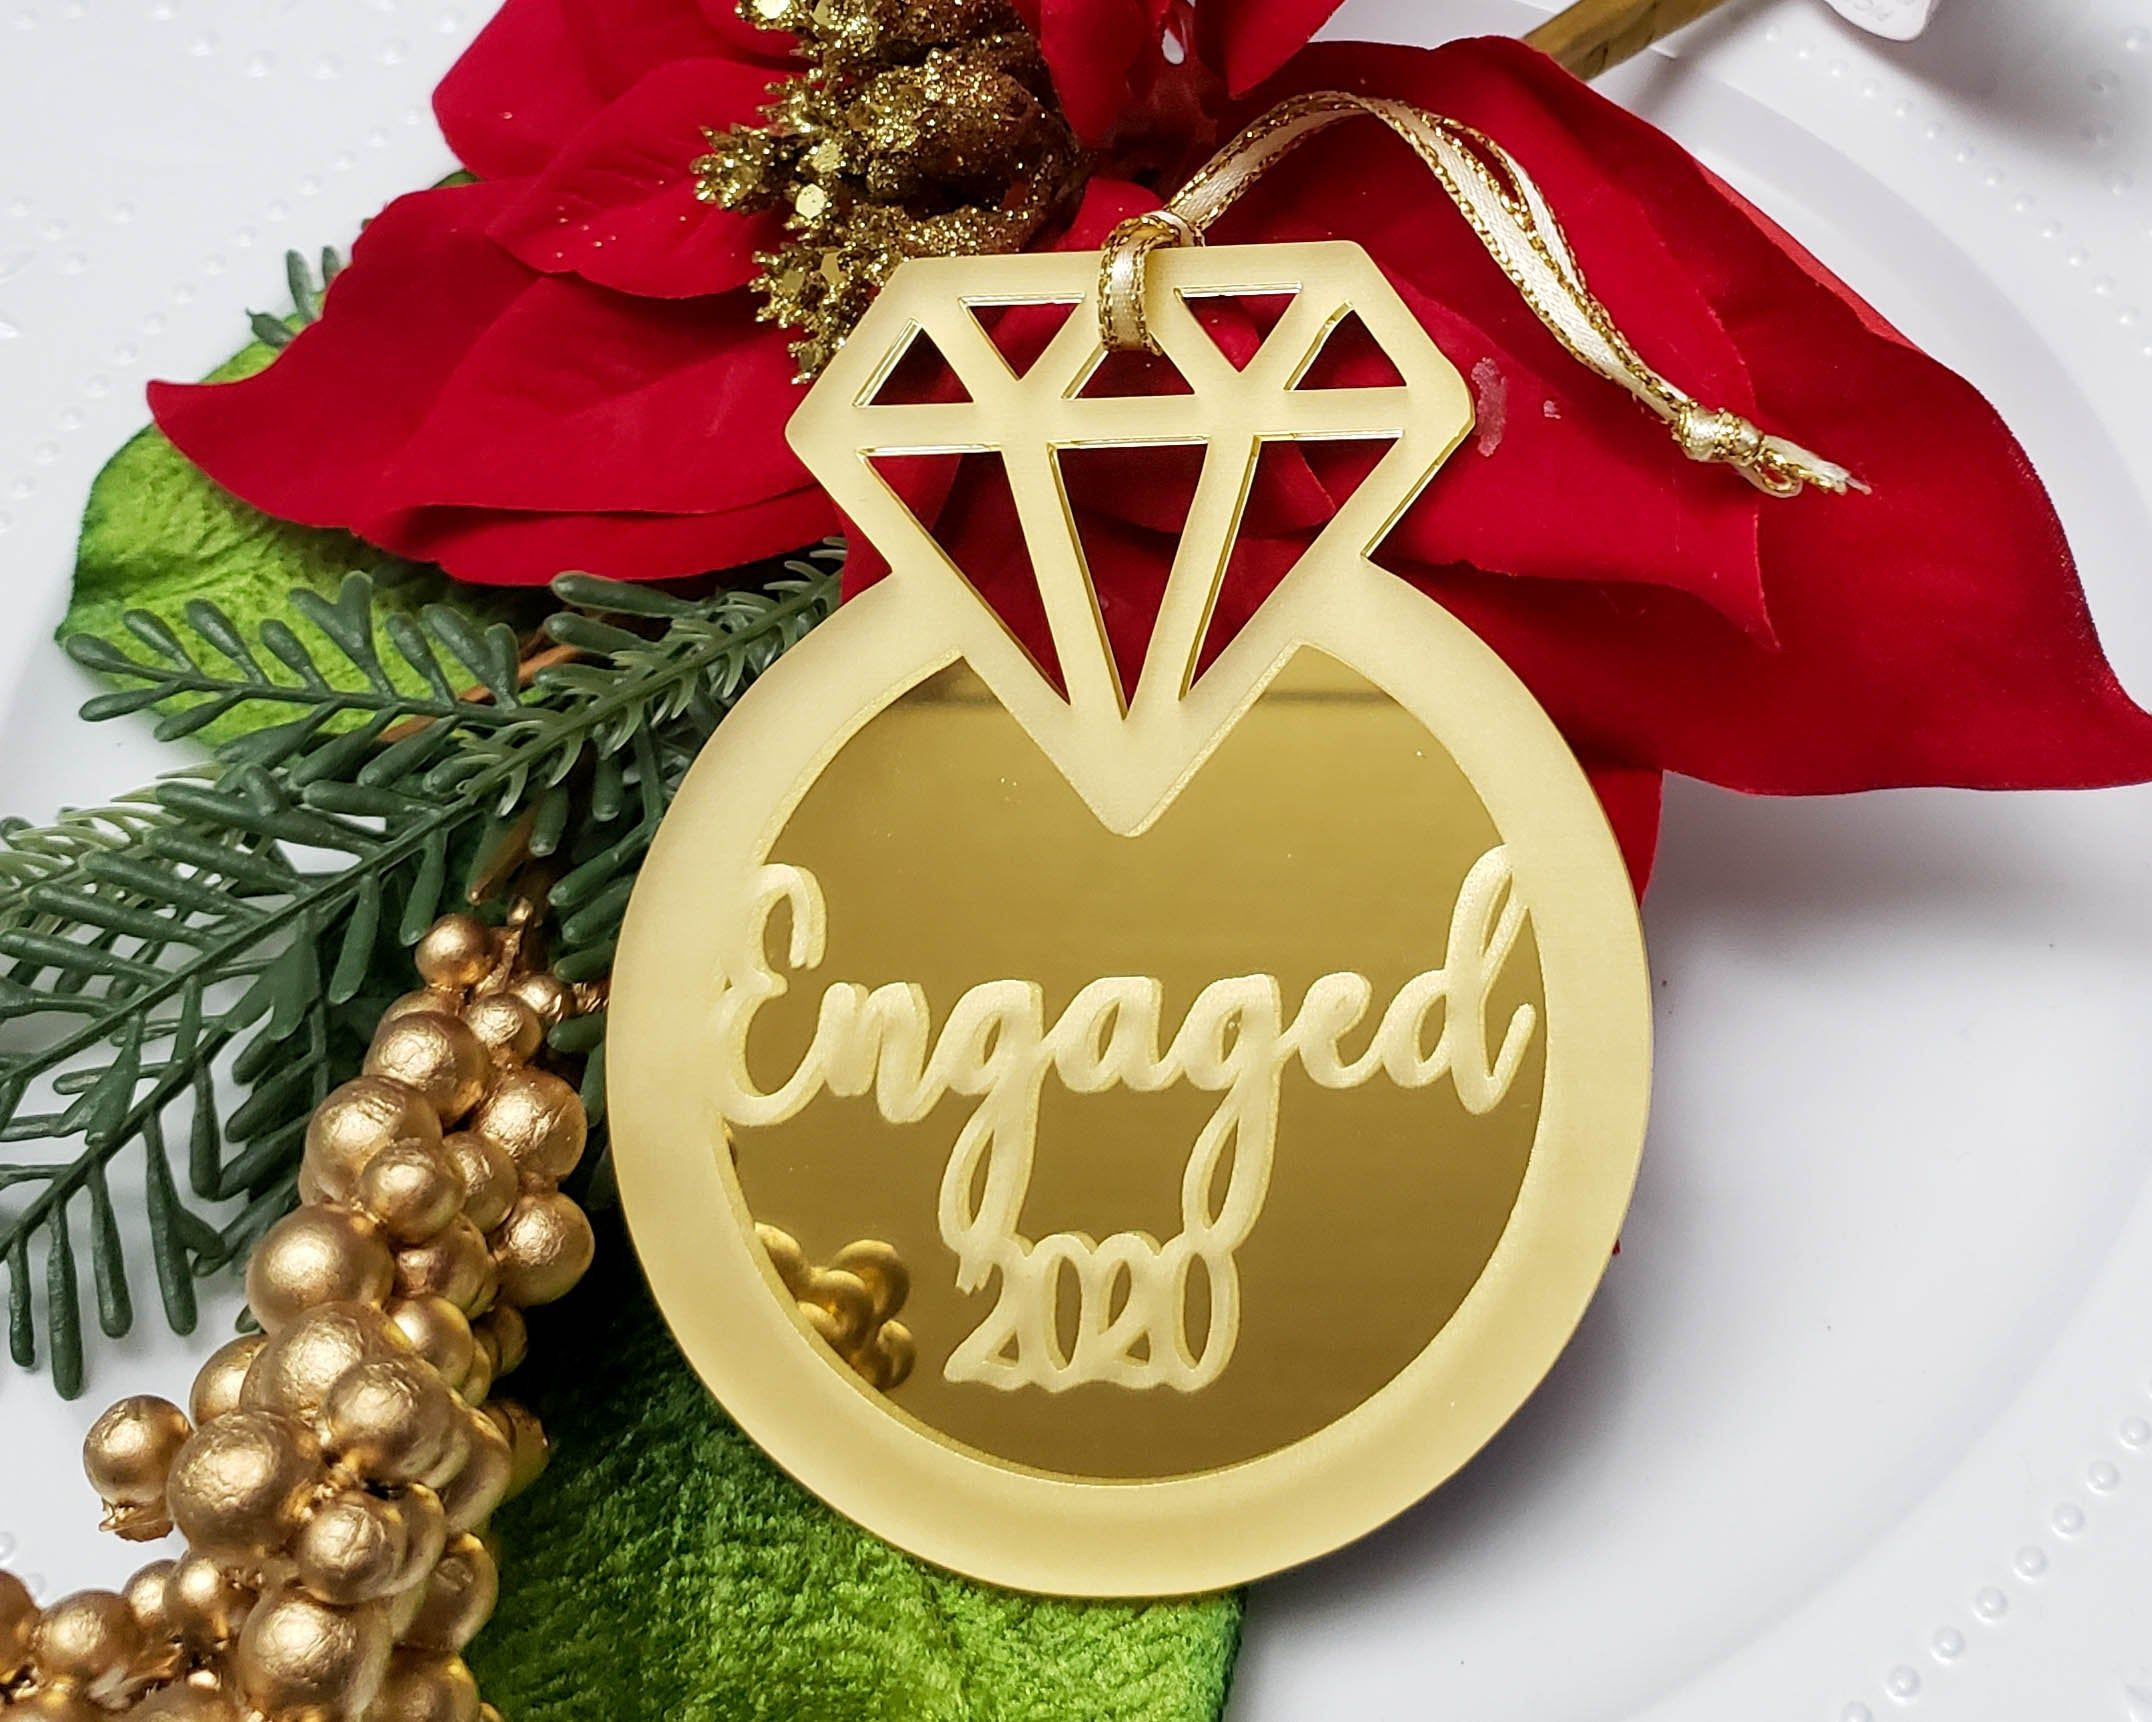 Engagement Ring Ornament Engaged Ornament Engagement Gift Etsy In 2020 Christmas Engagement Engagement Ornaments Engagement Gifts Newly Engaged